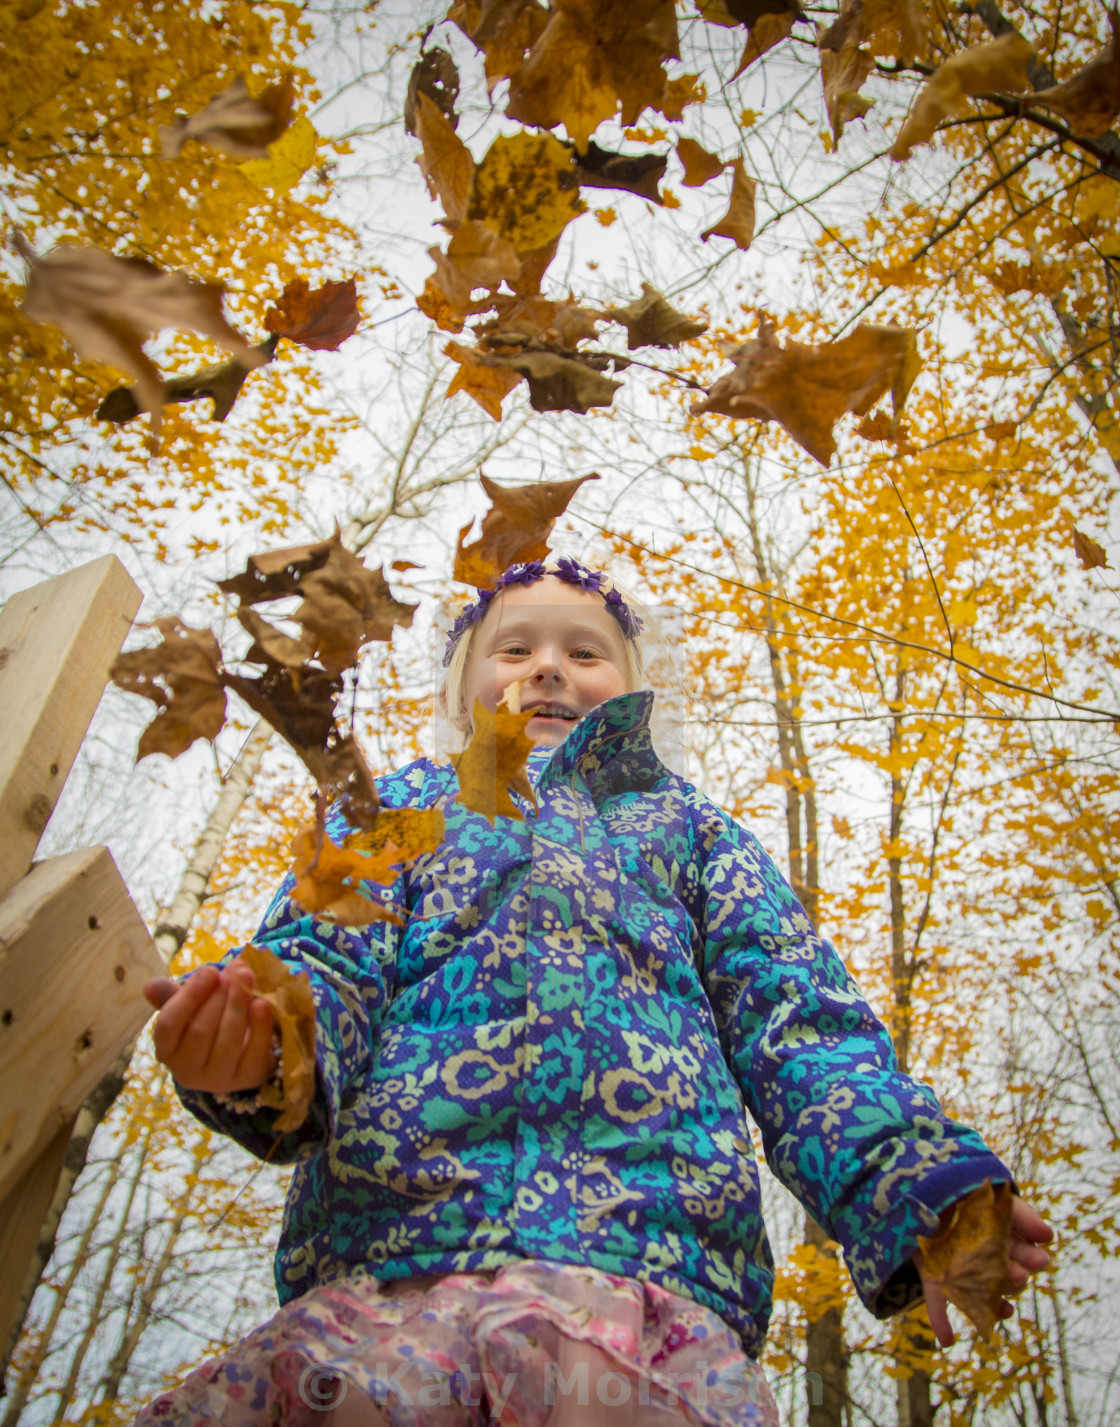 """Girl plays with Autumn leaves"" stock image"